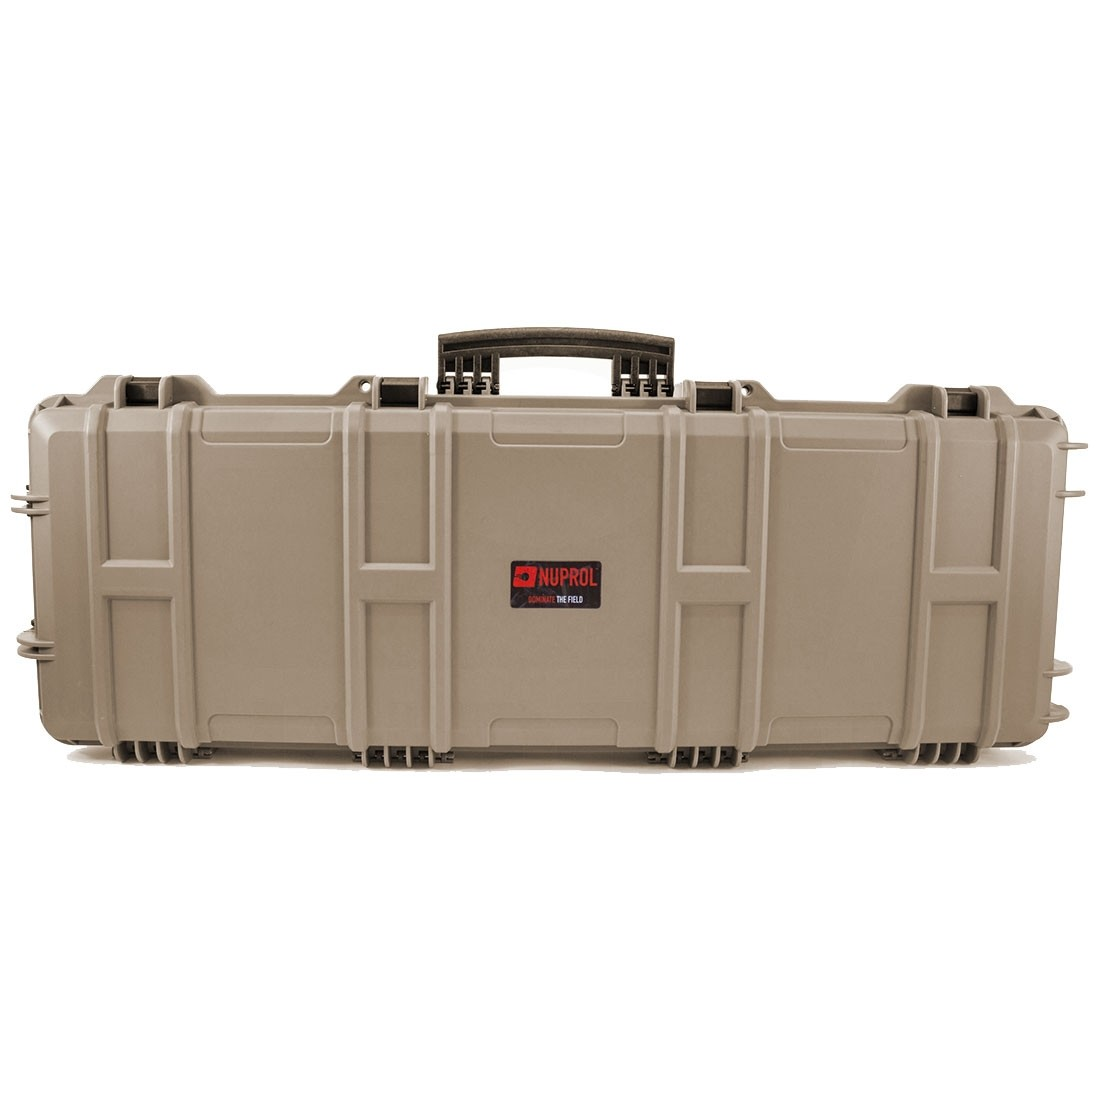 Nuprol Hard Case - Large - Tan